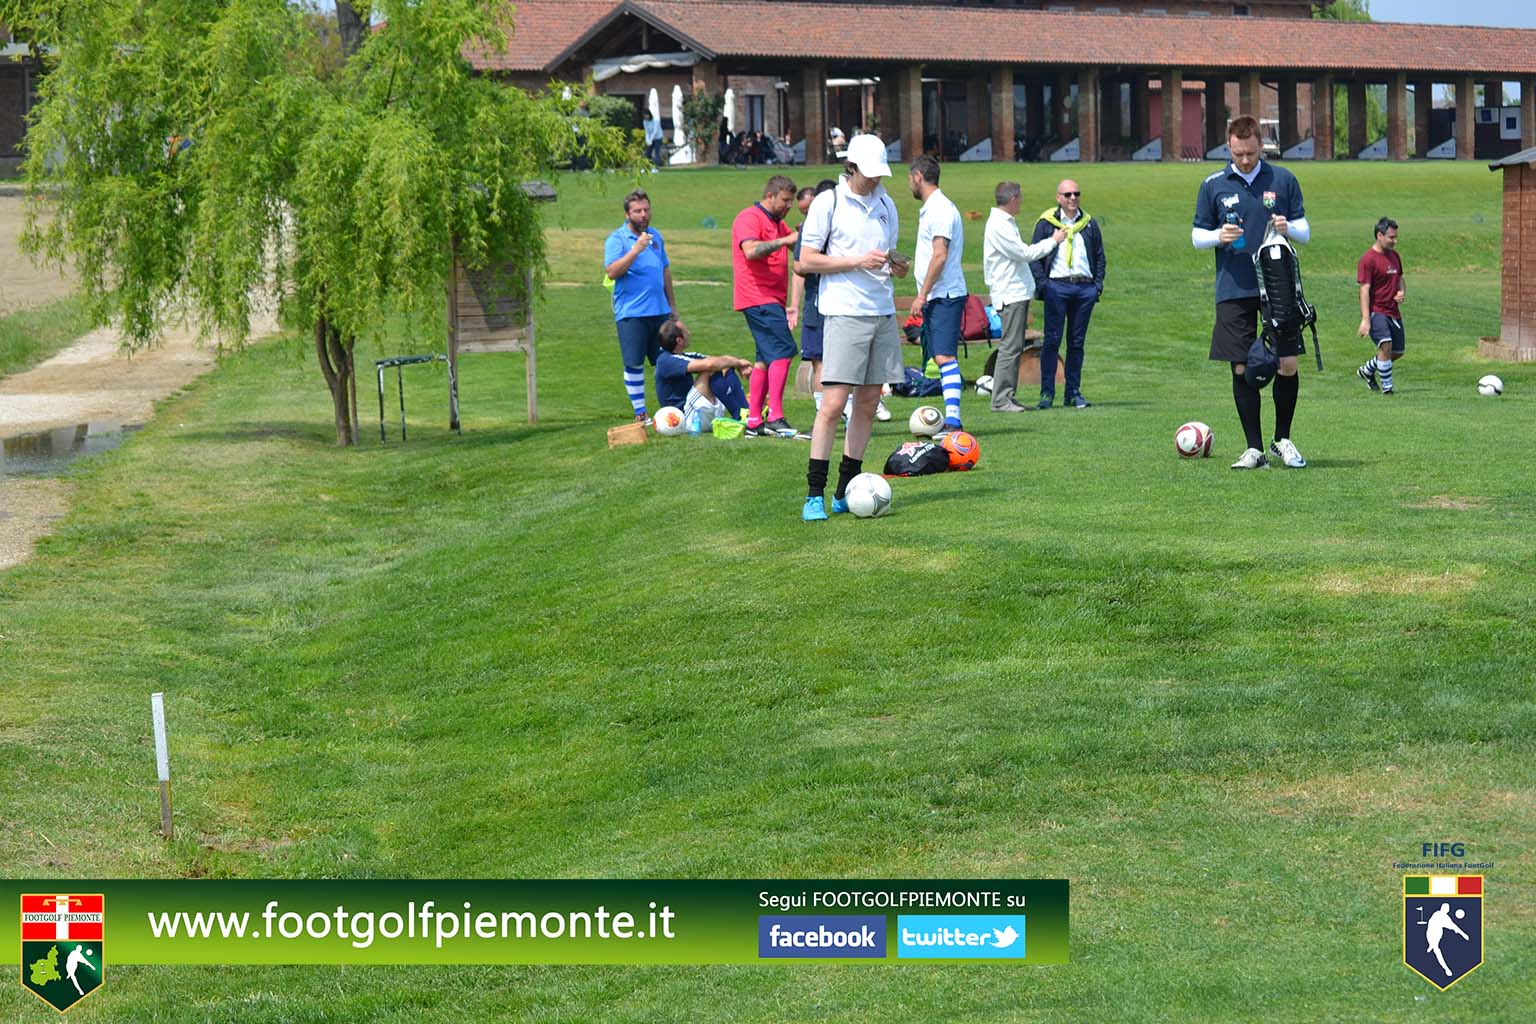 FOTO 9 Regions' Cup Footgolf Piemonte 2016 Golf Città di Asti (At) 30apr16-73